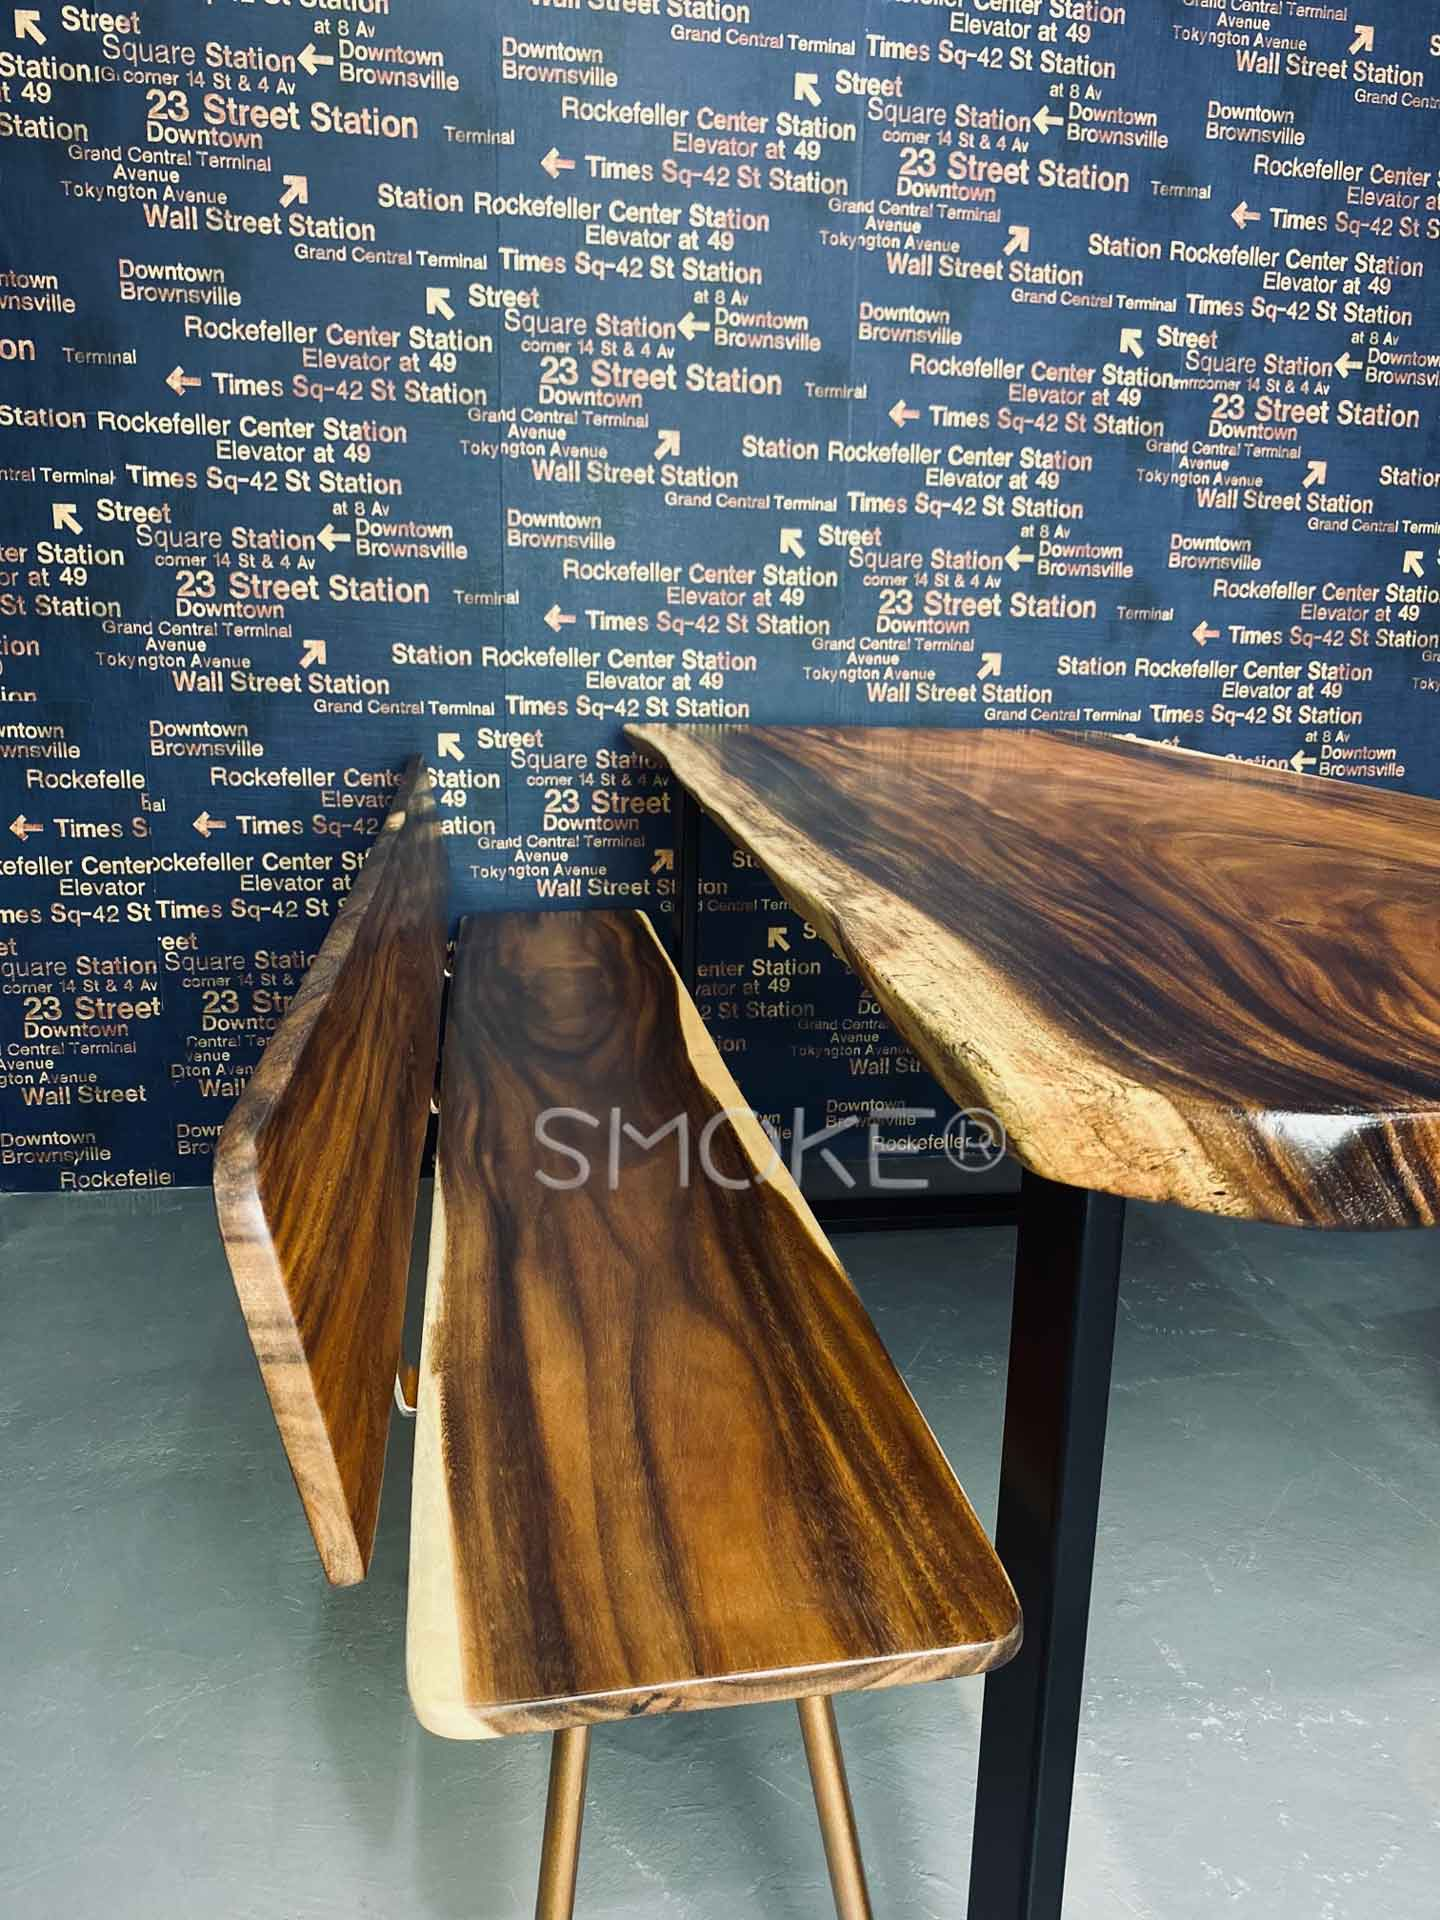 Rickson Dining Table with Bjorn wooden bench